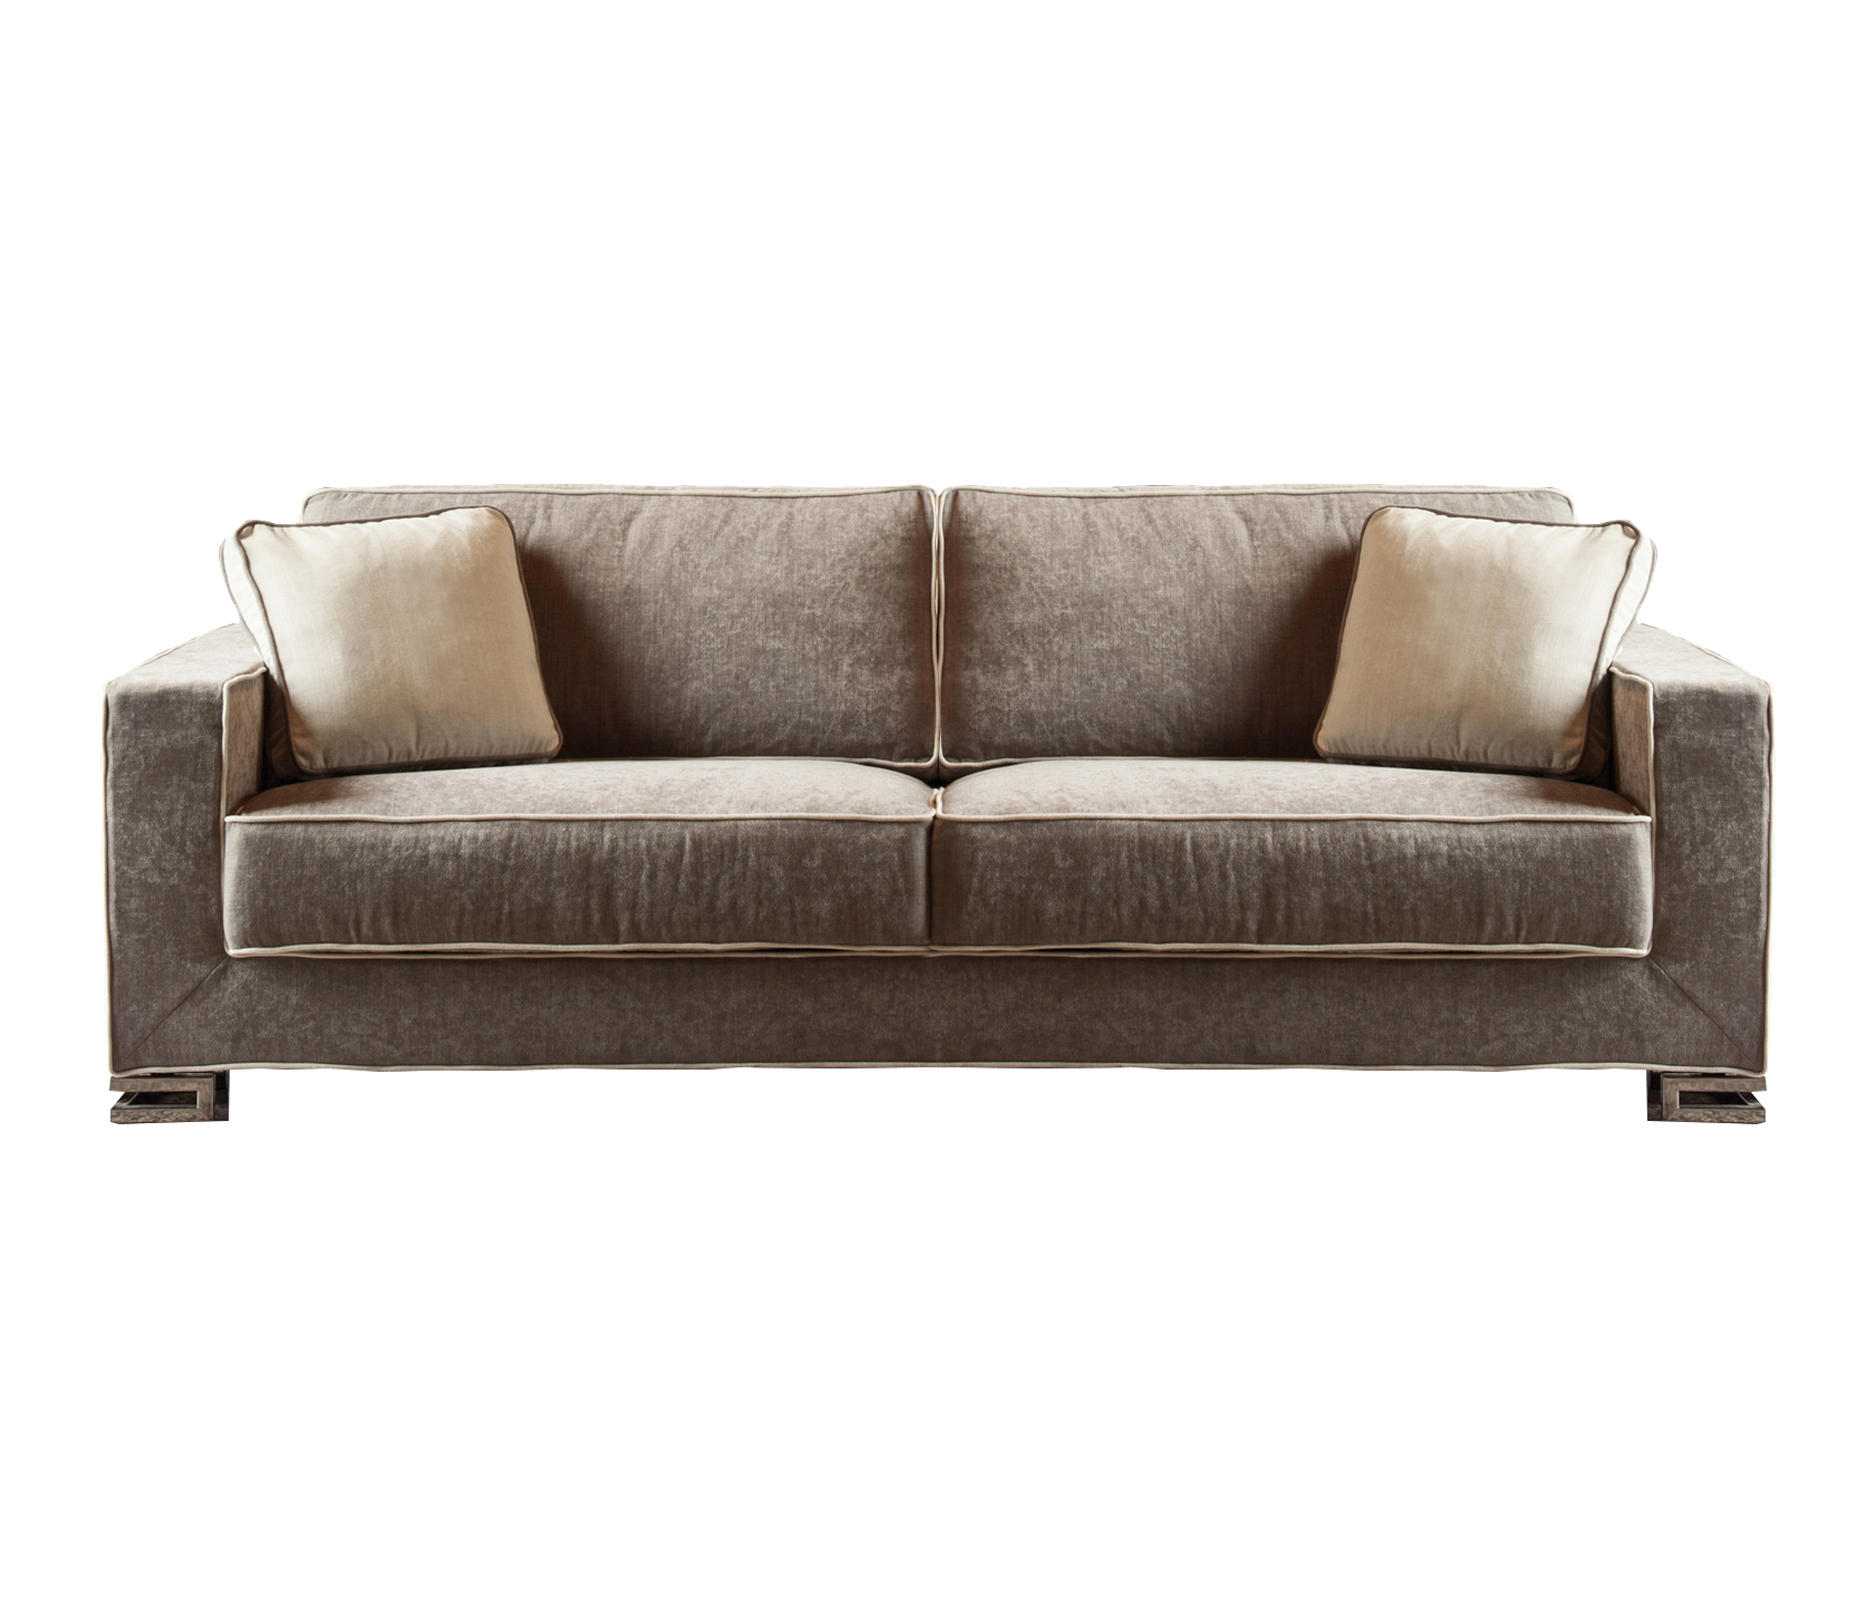 garrison sofa beds from milano bedding architonic. Black Bedroom Furniture Sets. Home Design Ideas